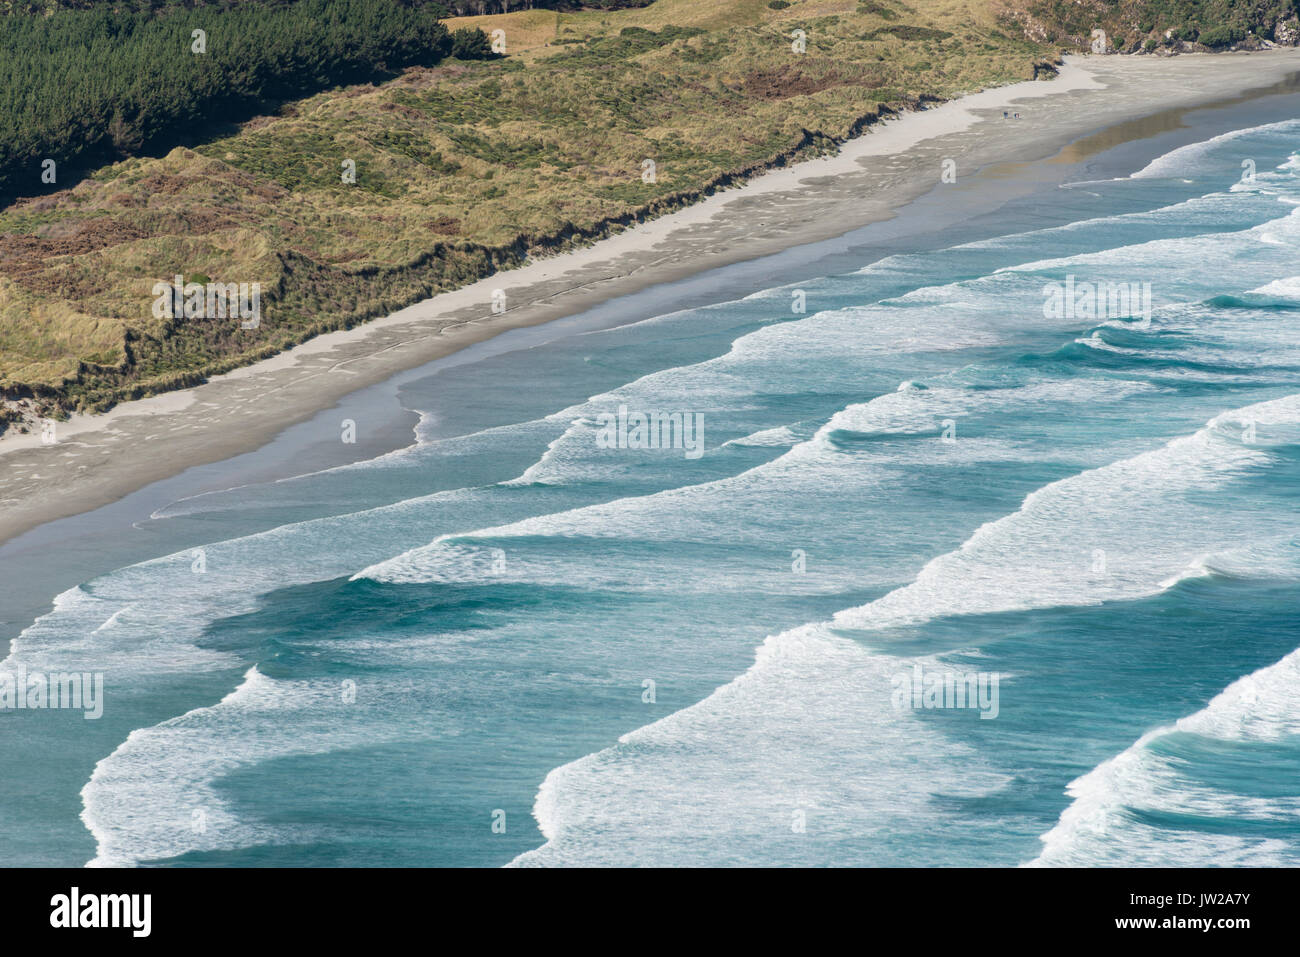 Spinning waves breaking at the flat sand beach, Allans Beach, Dunedin, Otago Peninsula, South Island, New Zealand - Stock Image